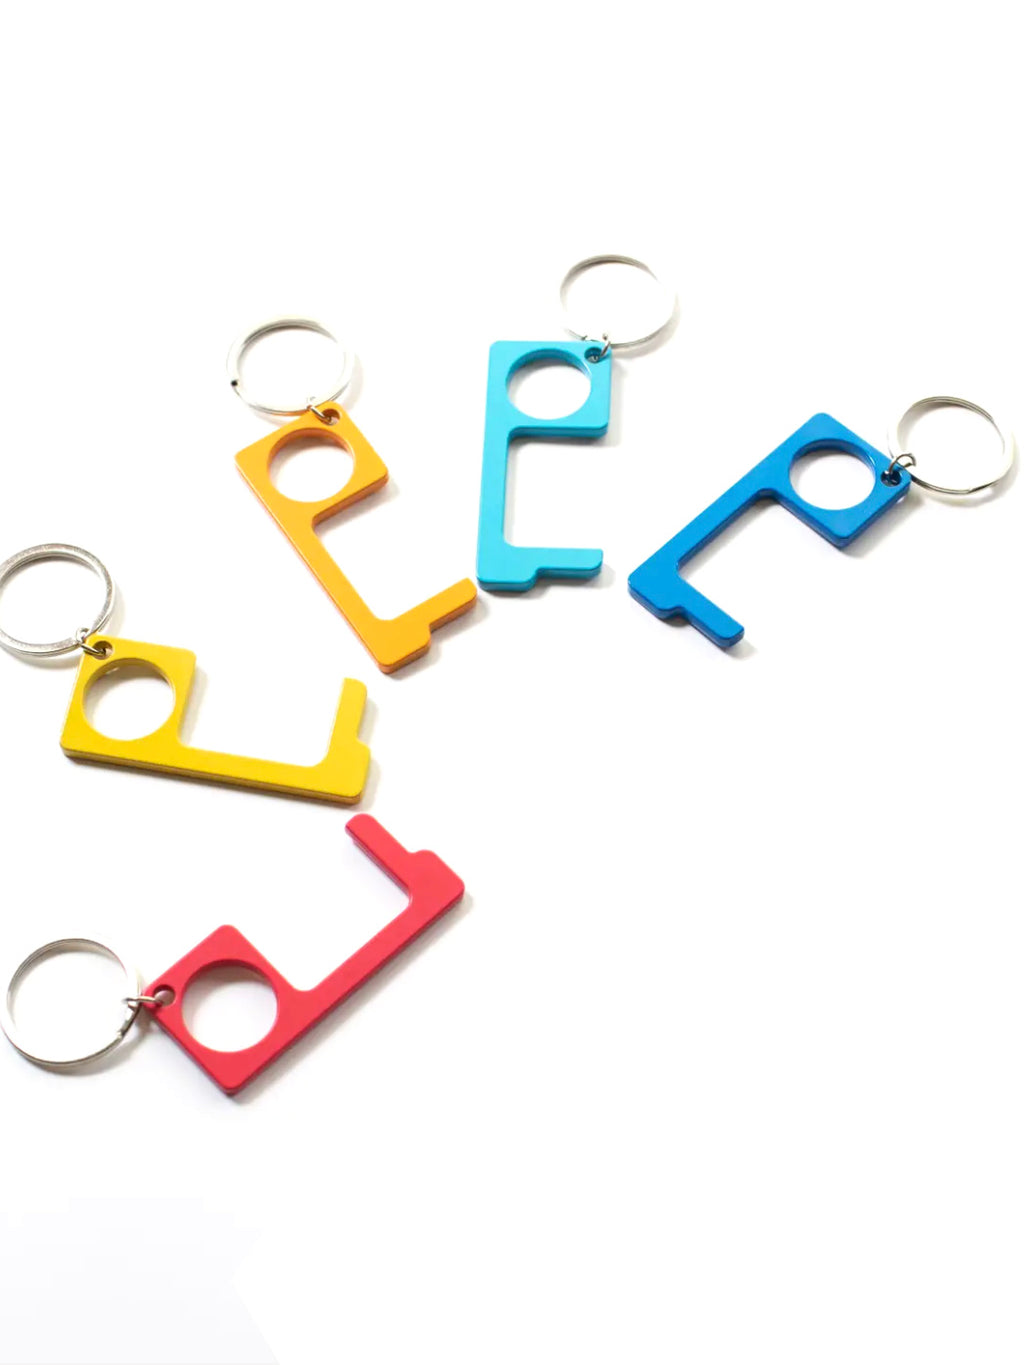 No Touch Button Pusher and Door Opener Keychain (Assorted Colors)